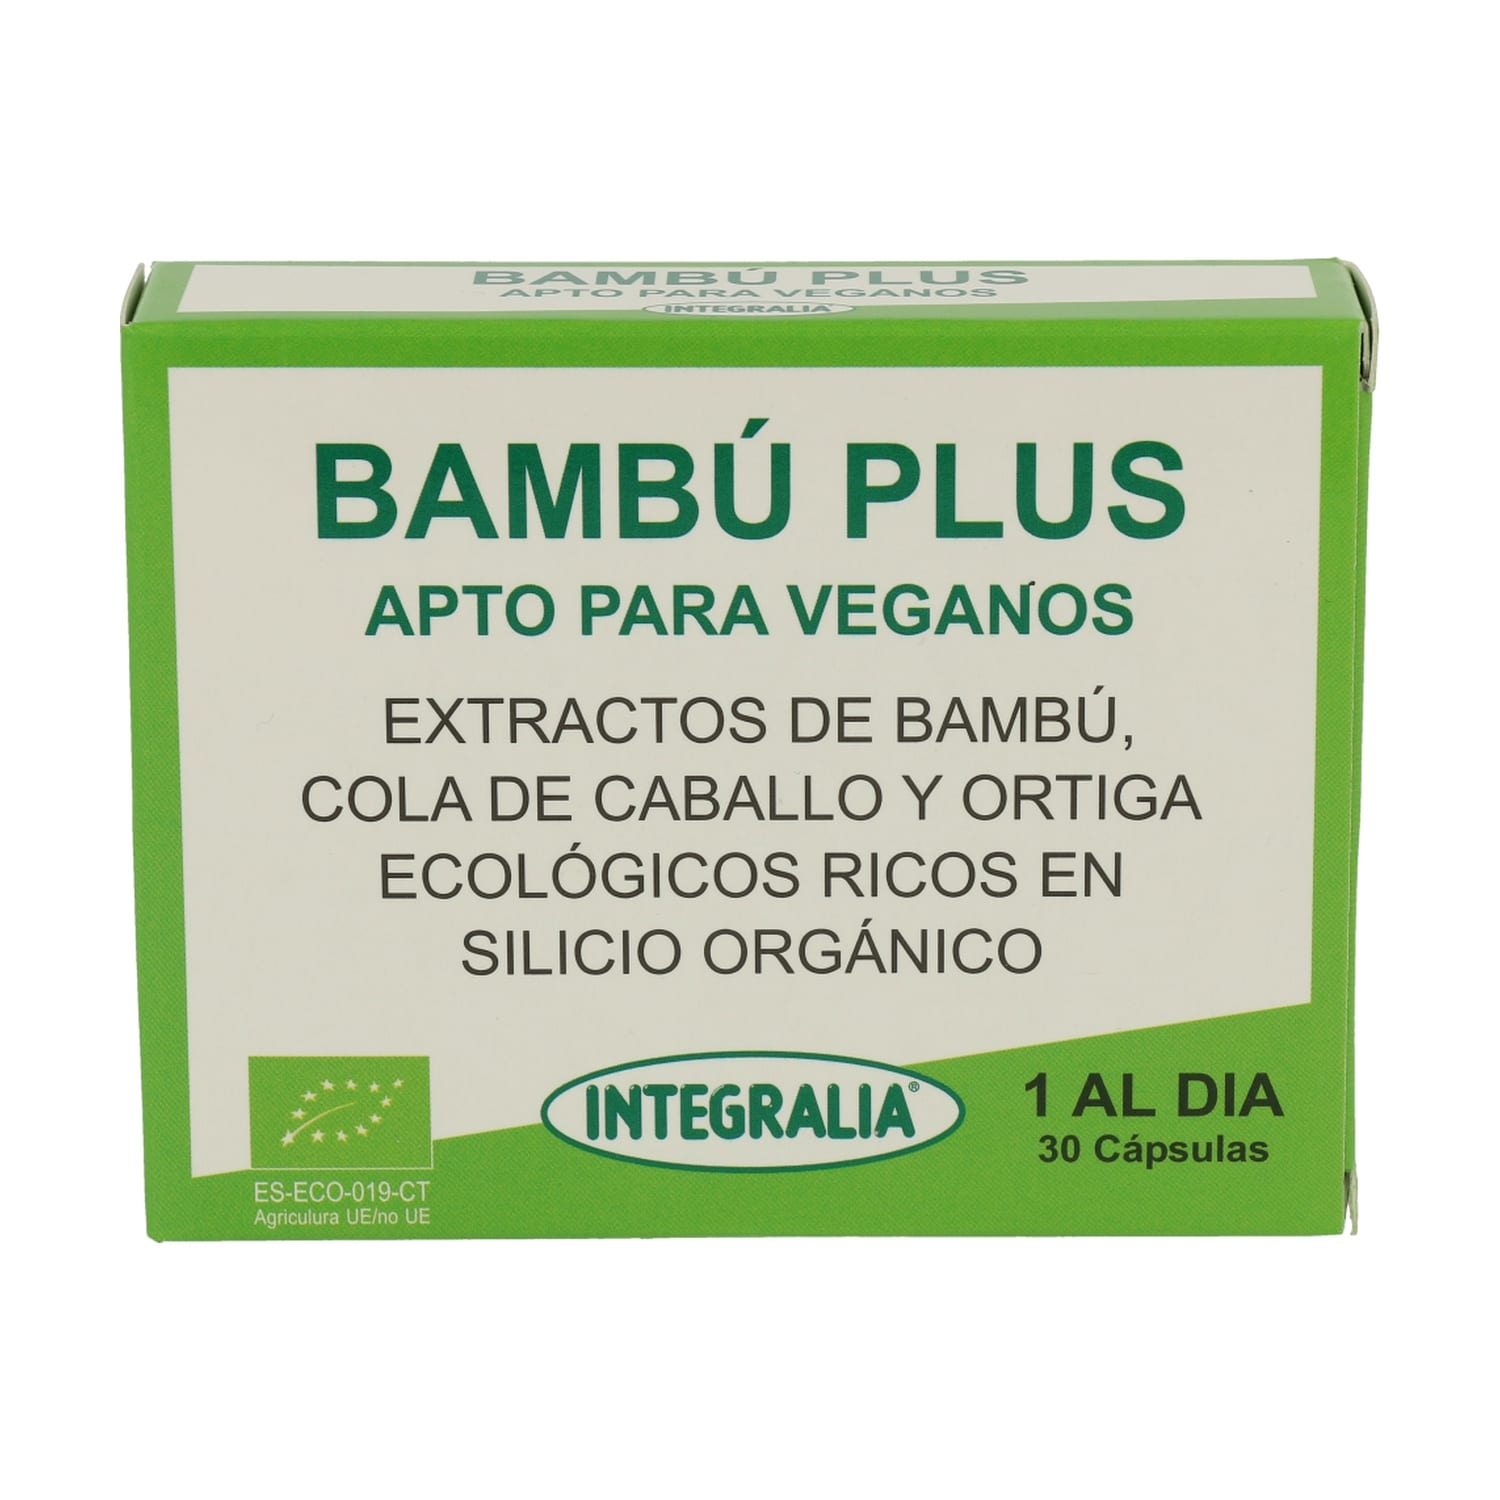 Bambu Plus ECO – Integralia – 30 cápsulas